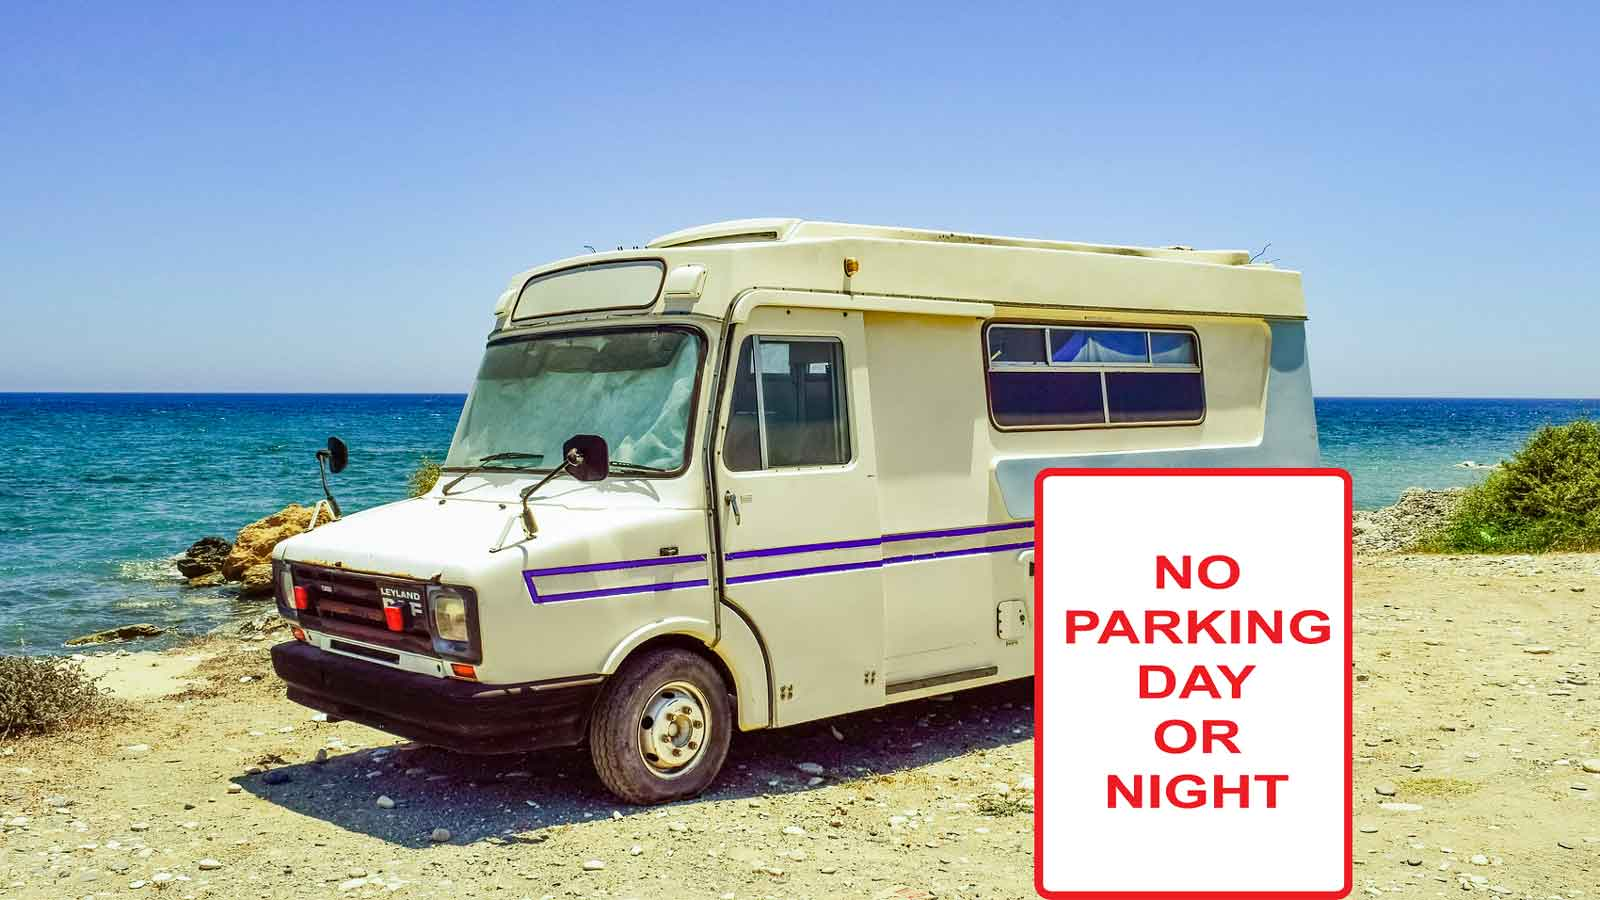 Wohnmobil-Strand-no-parking